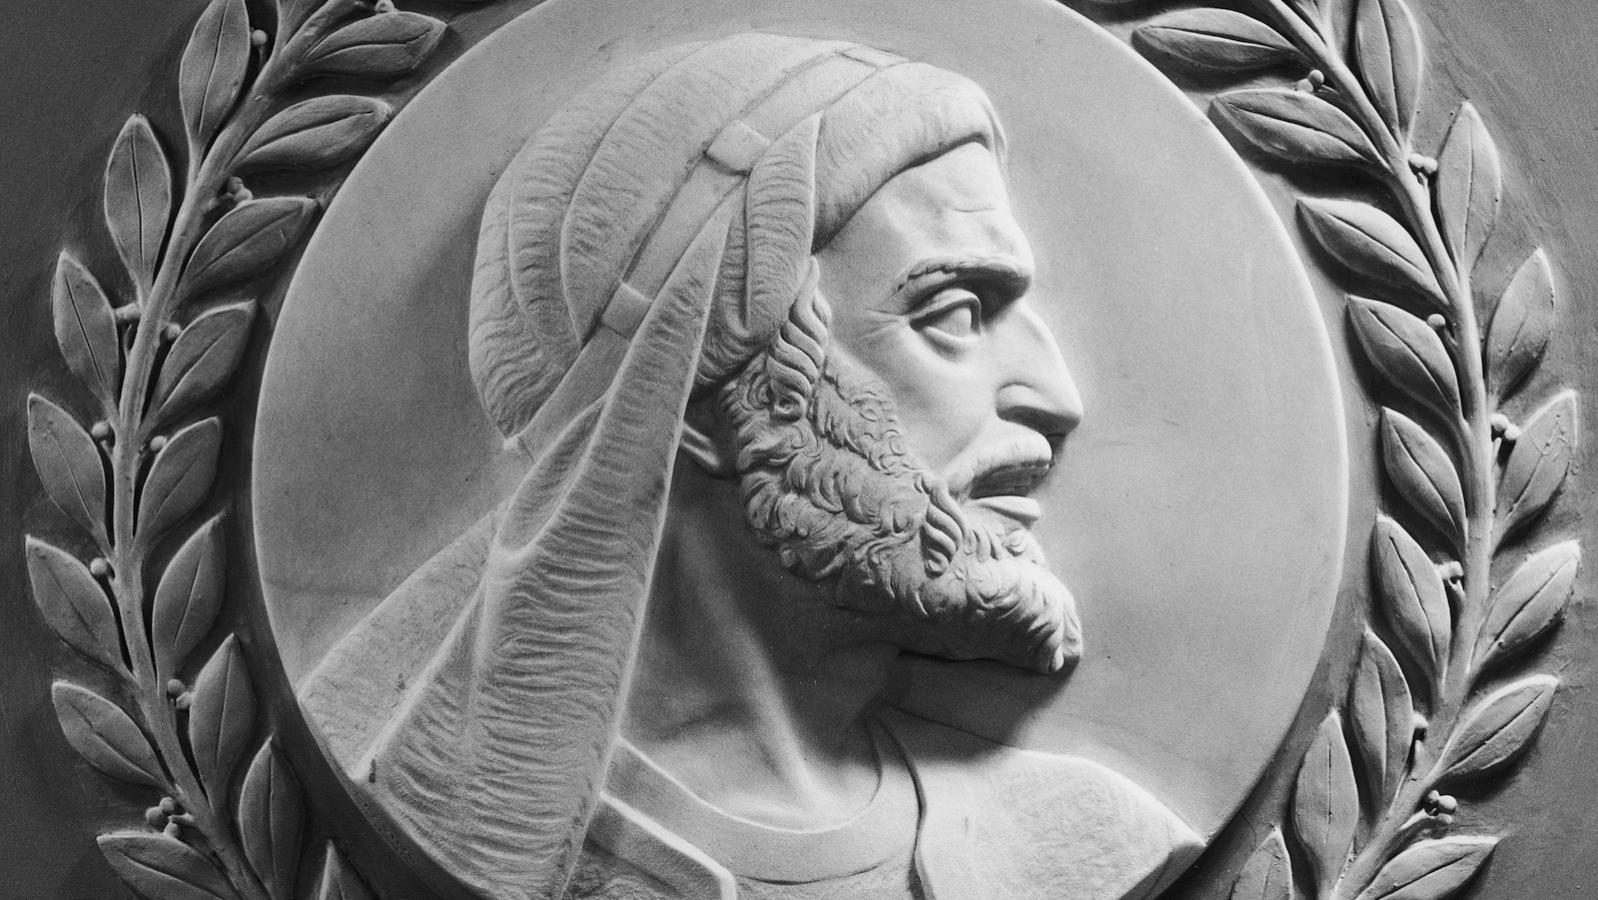 From a marble relief portrait of Maimonides in the U.S. Capitol by Brenda Putnam. Architect of the Capitol.